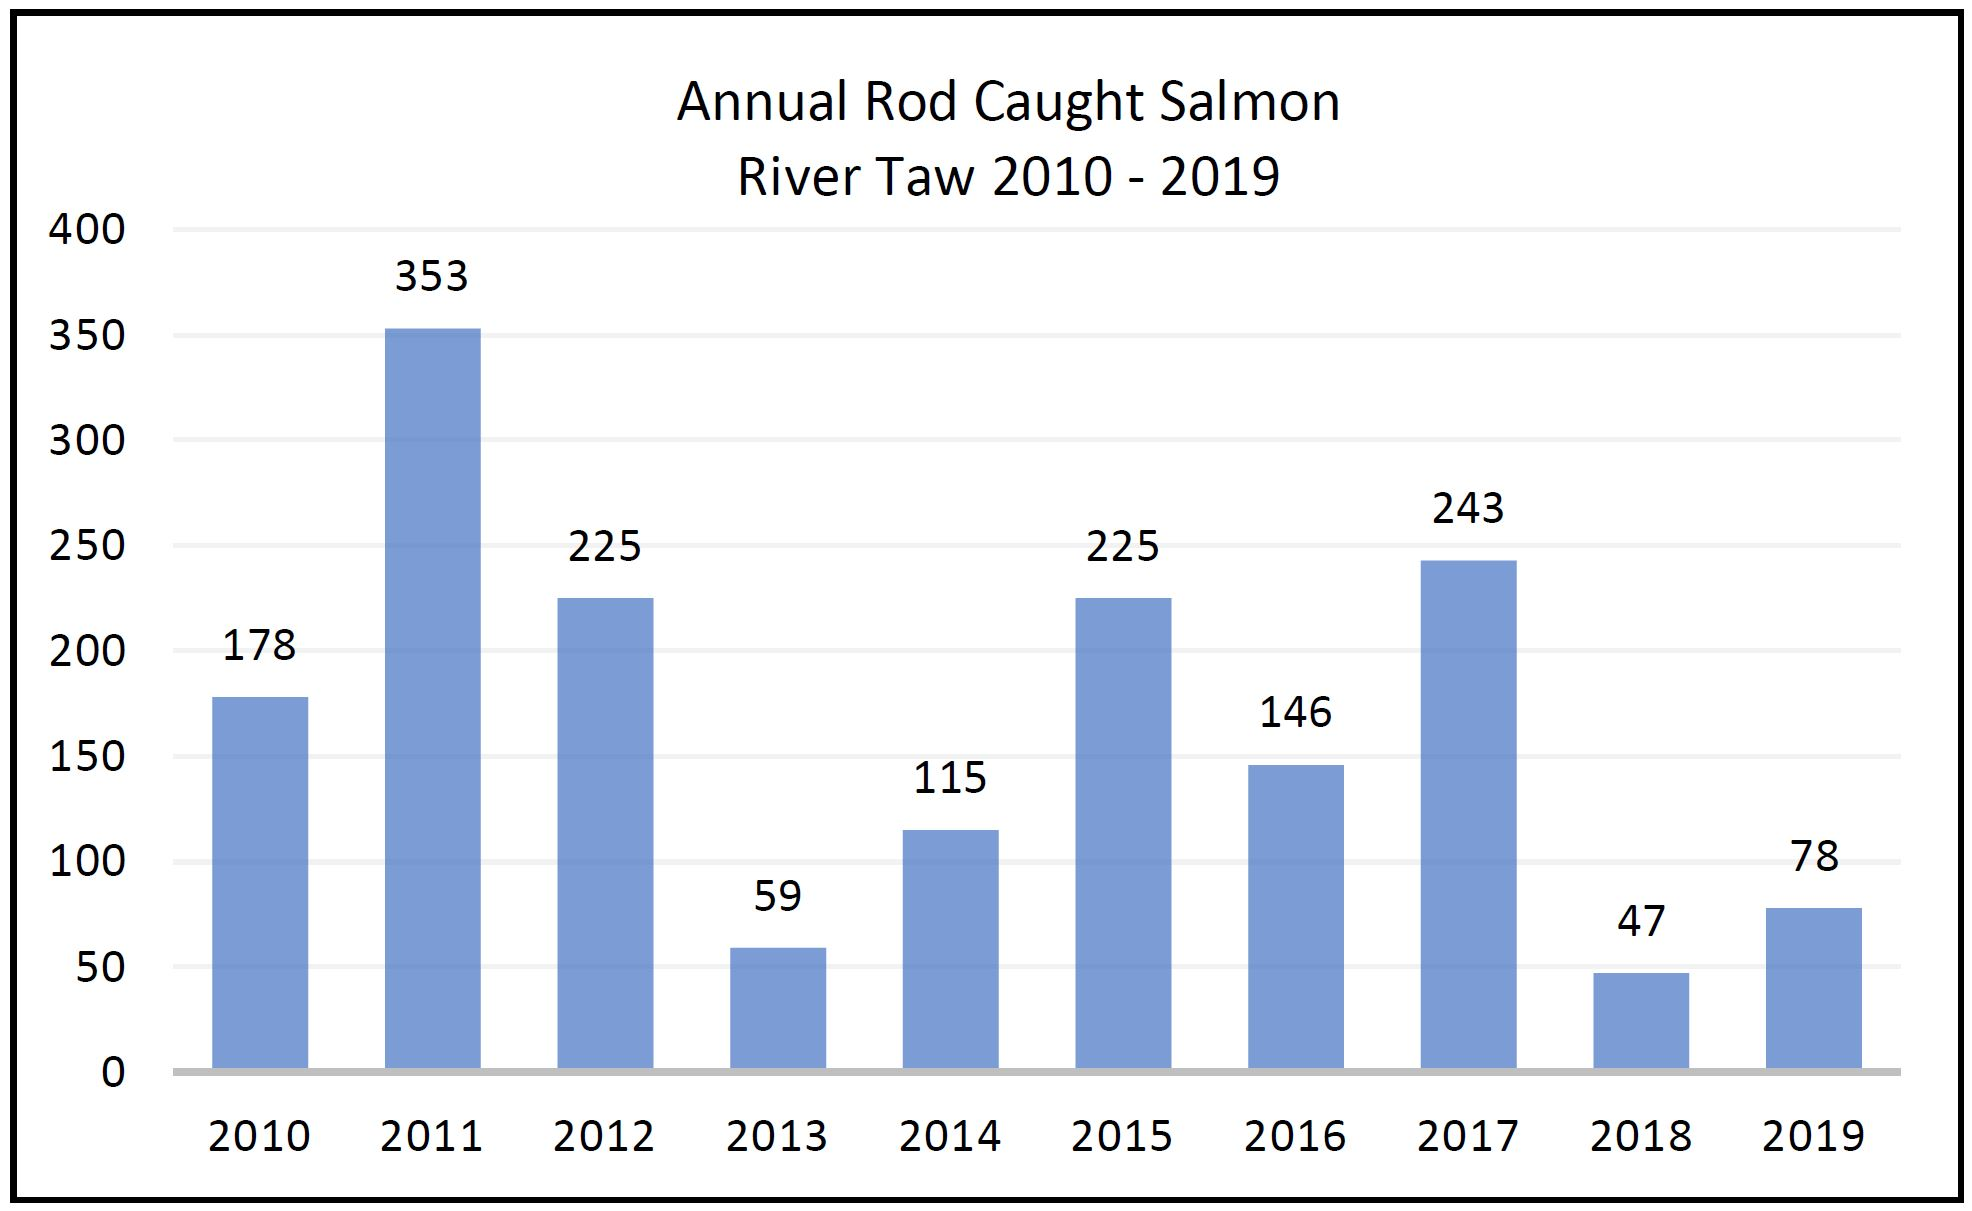 Annual Rod Caught Salmon - River Taw - 2010 to 2019